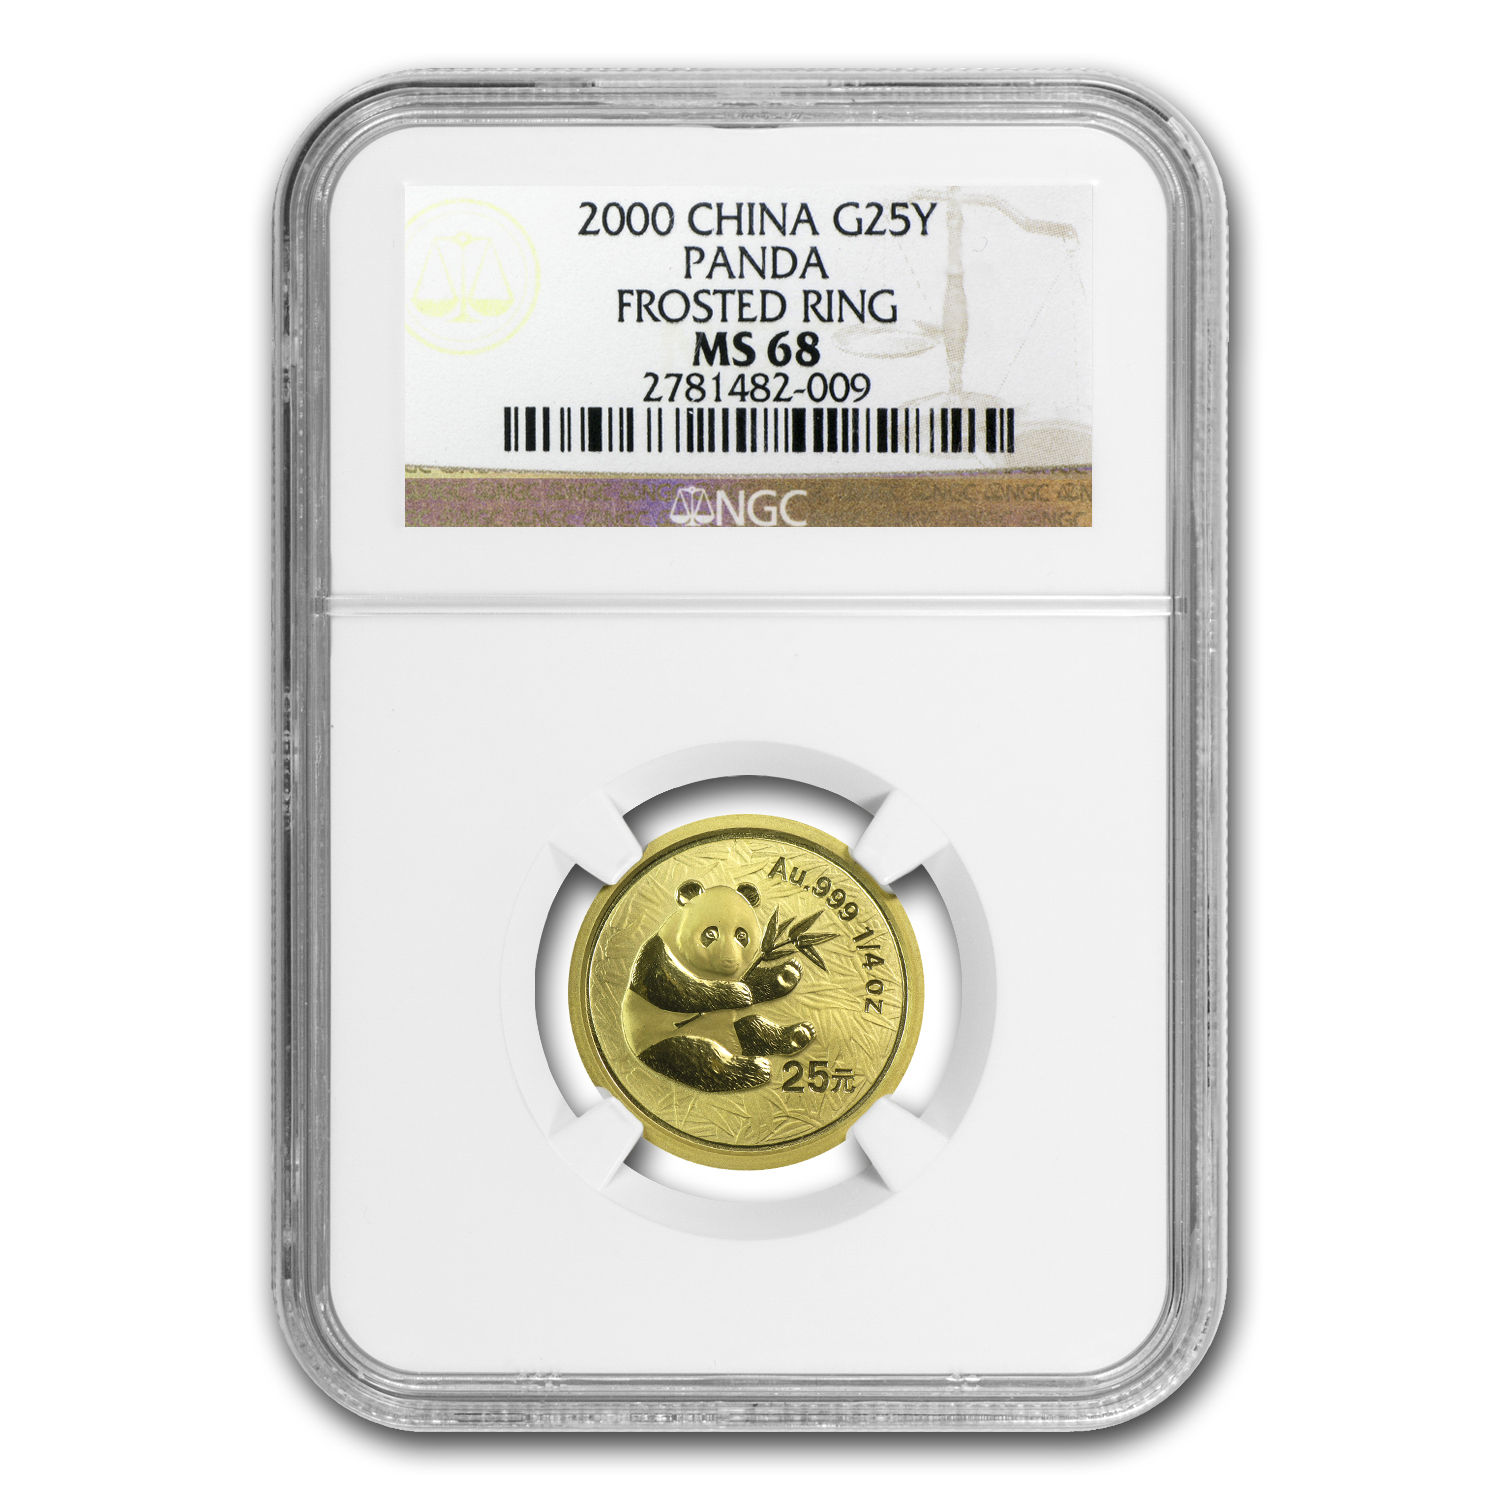 2000 (1/4 oz) Gold Chinese Panda - MS-68 NGC - Frosted